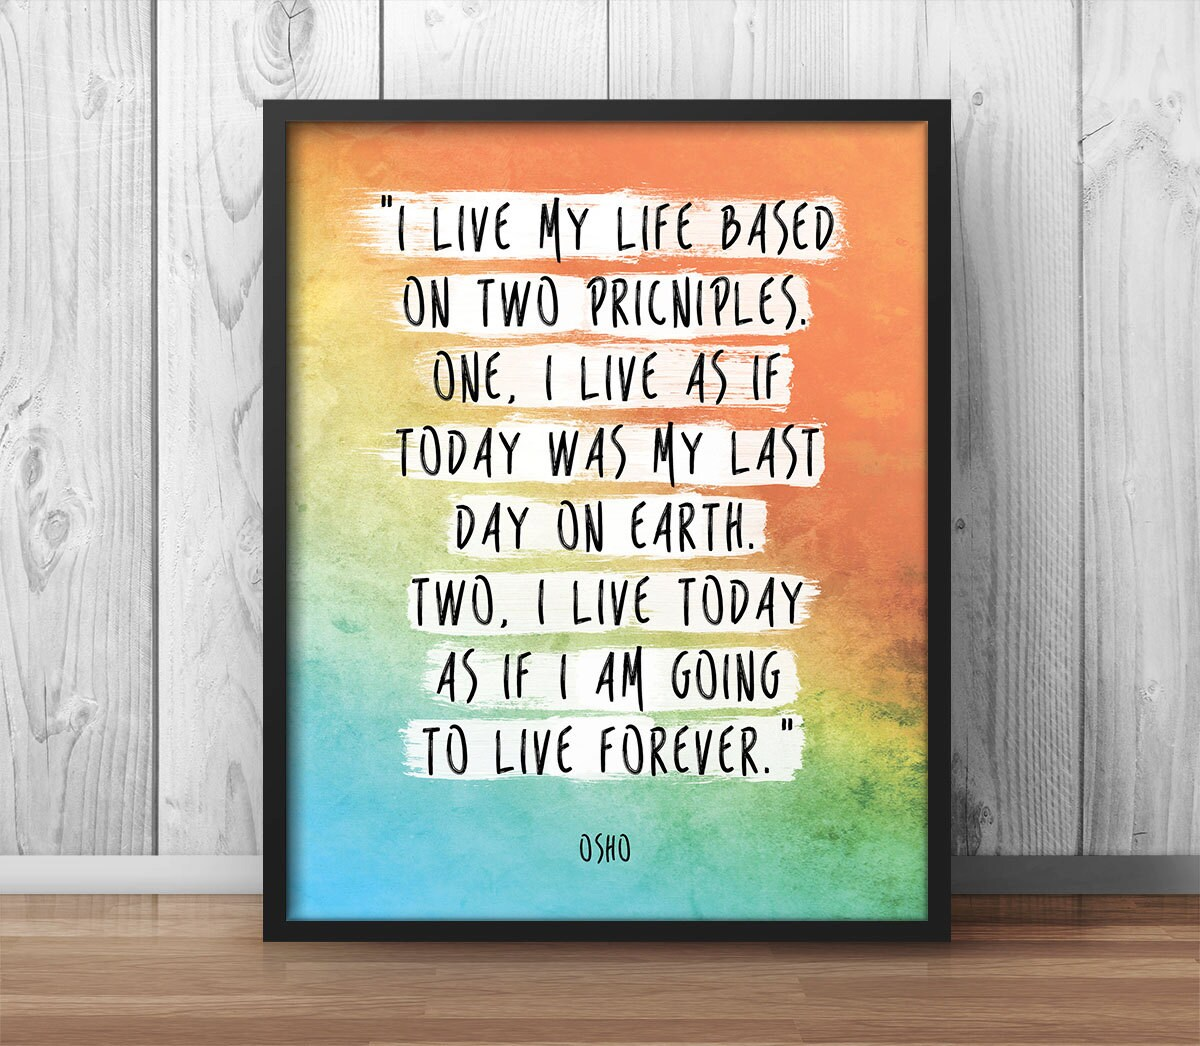 Life Quotes Posters Osho Bhagwan Rajneesh Print Poster Quote Live My Life